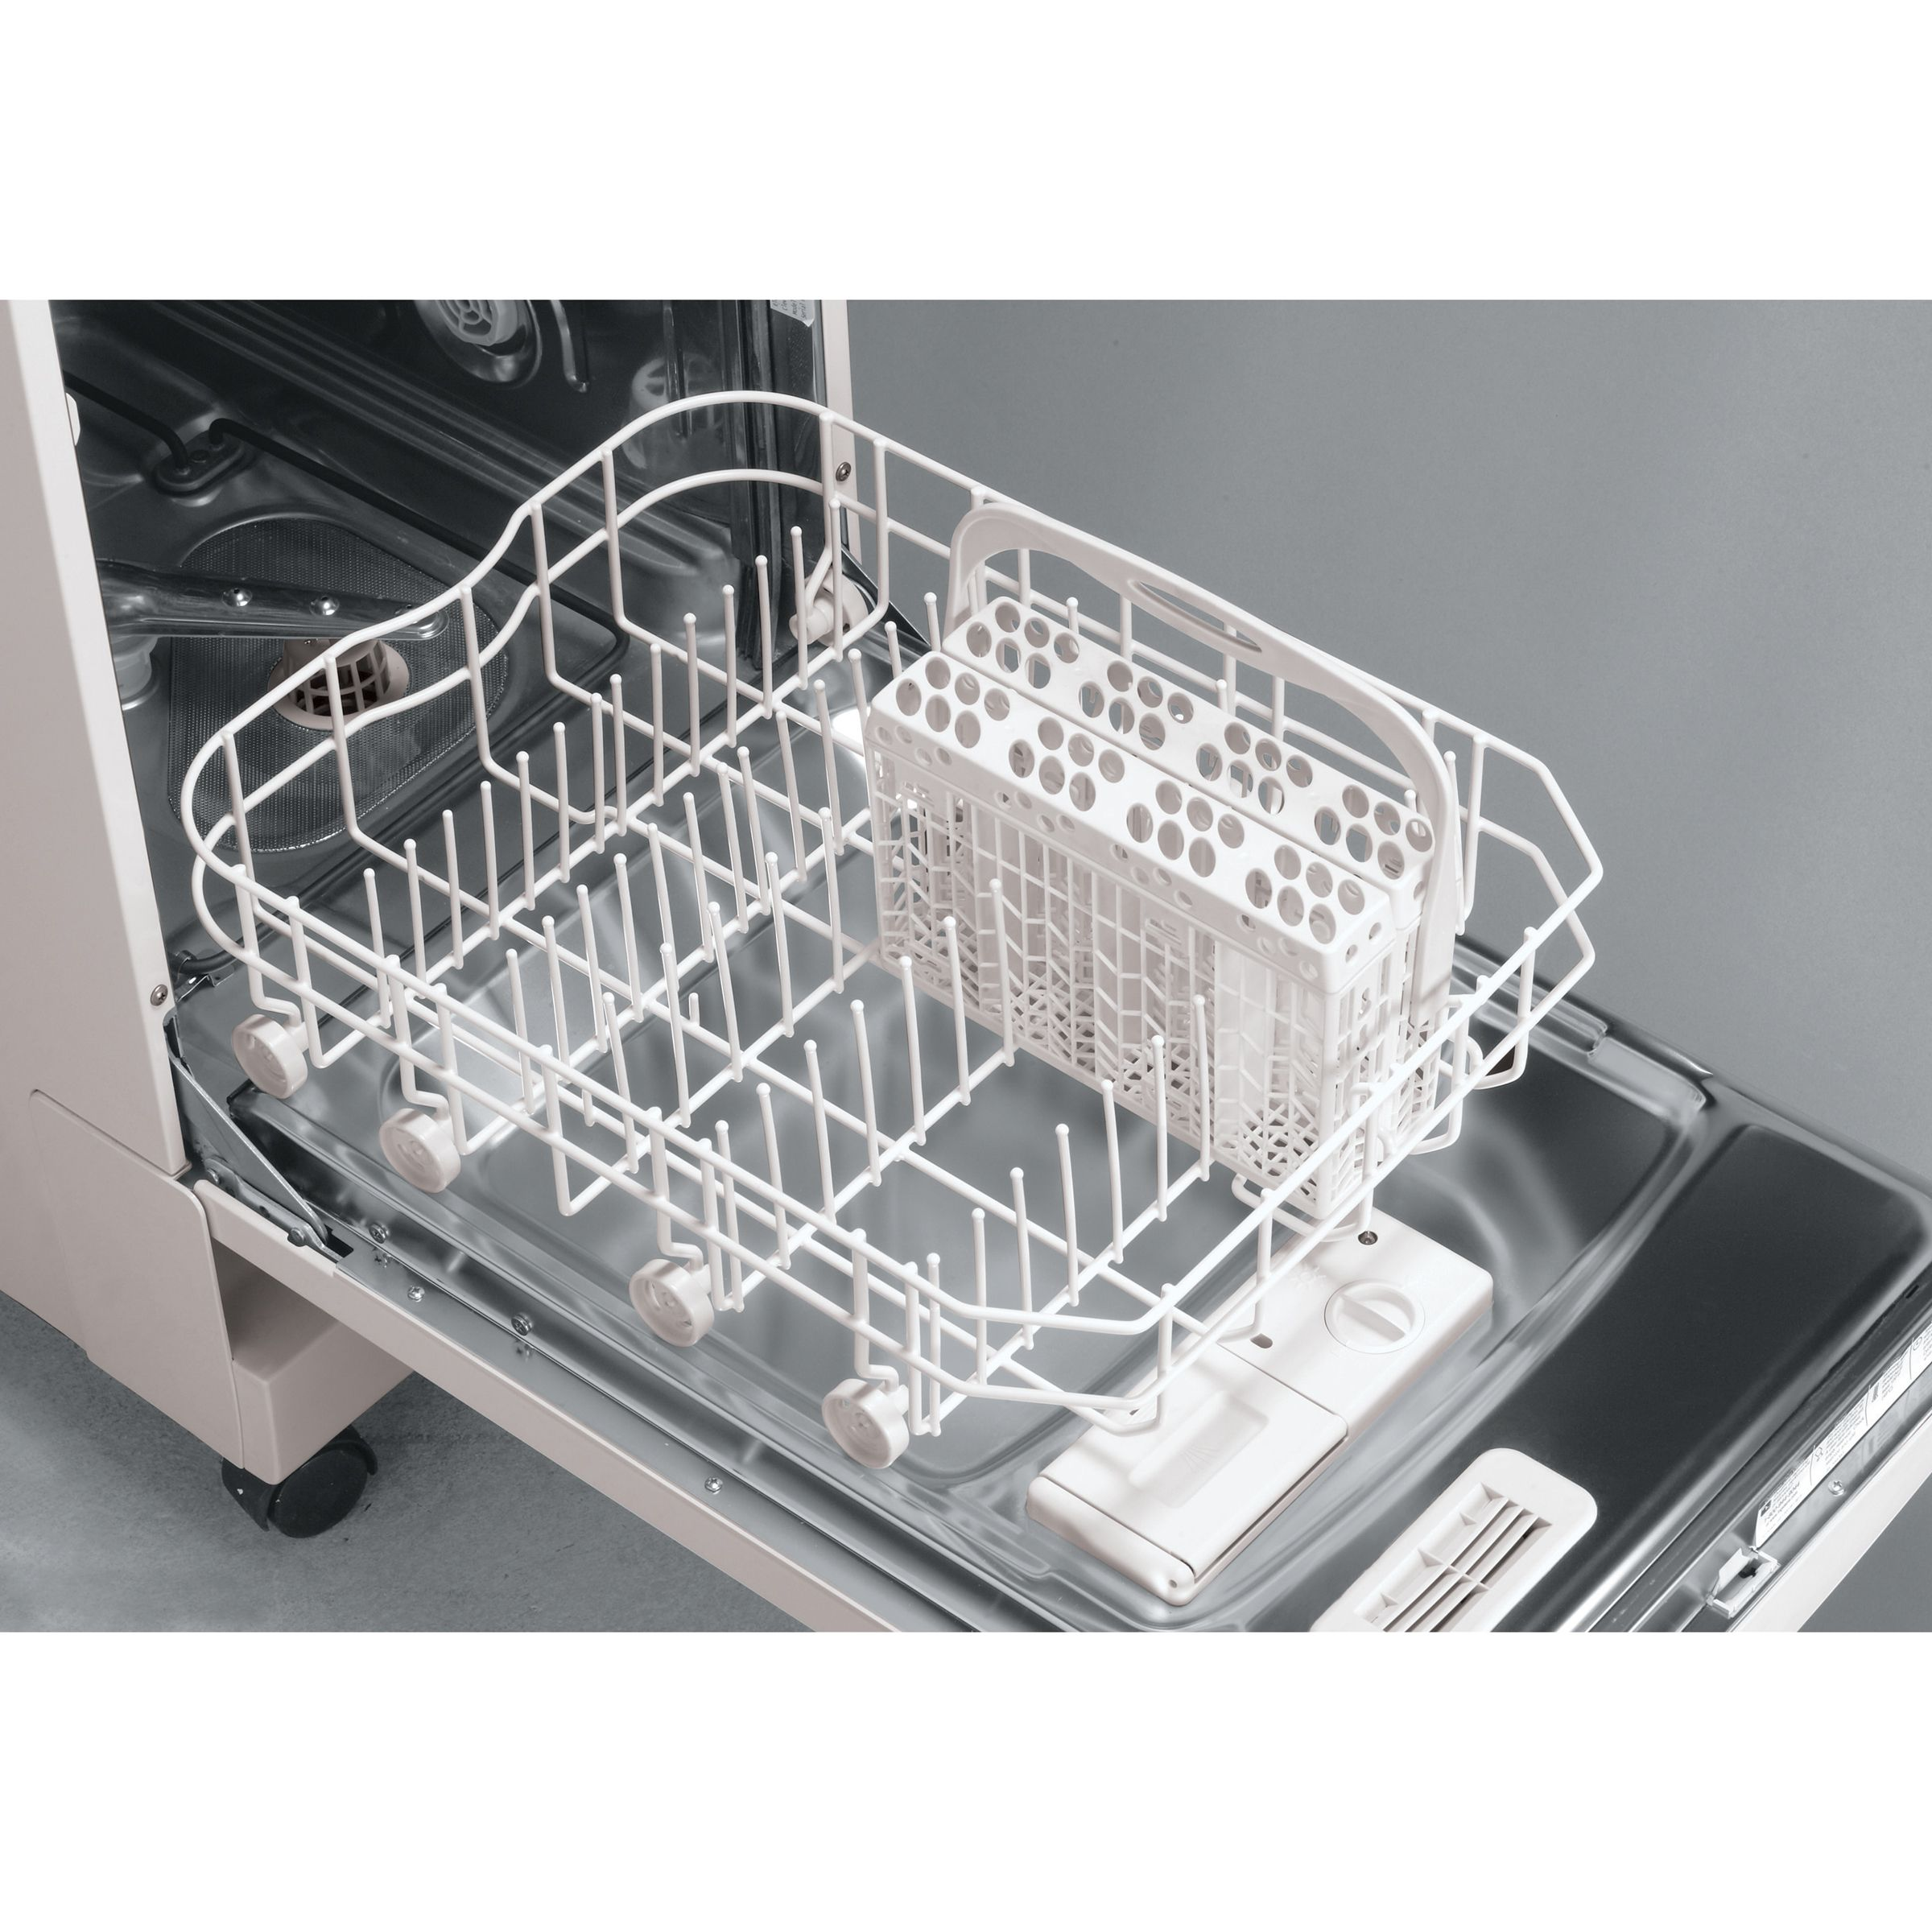 Kenmore 18 in. Built-In Dishwasher (1440)